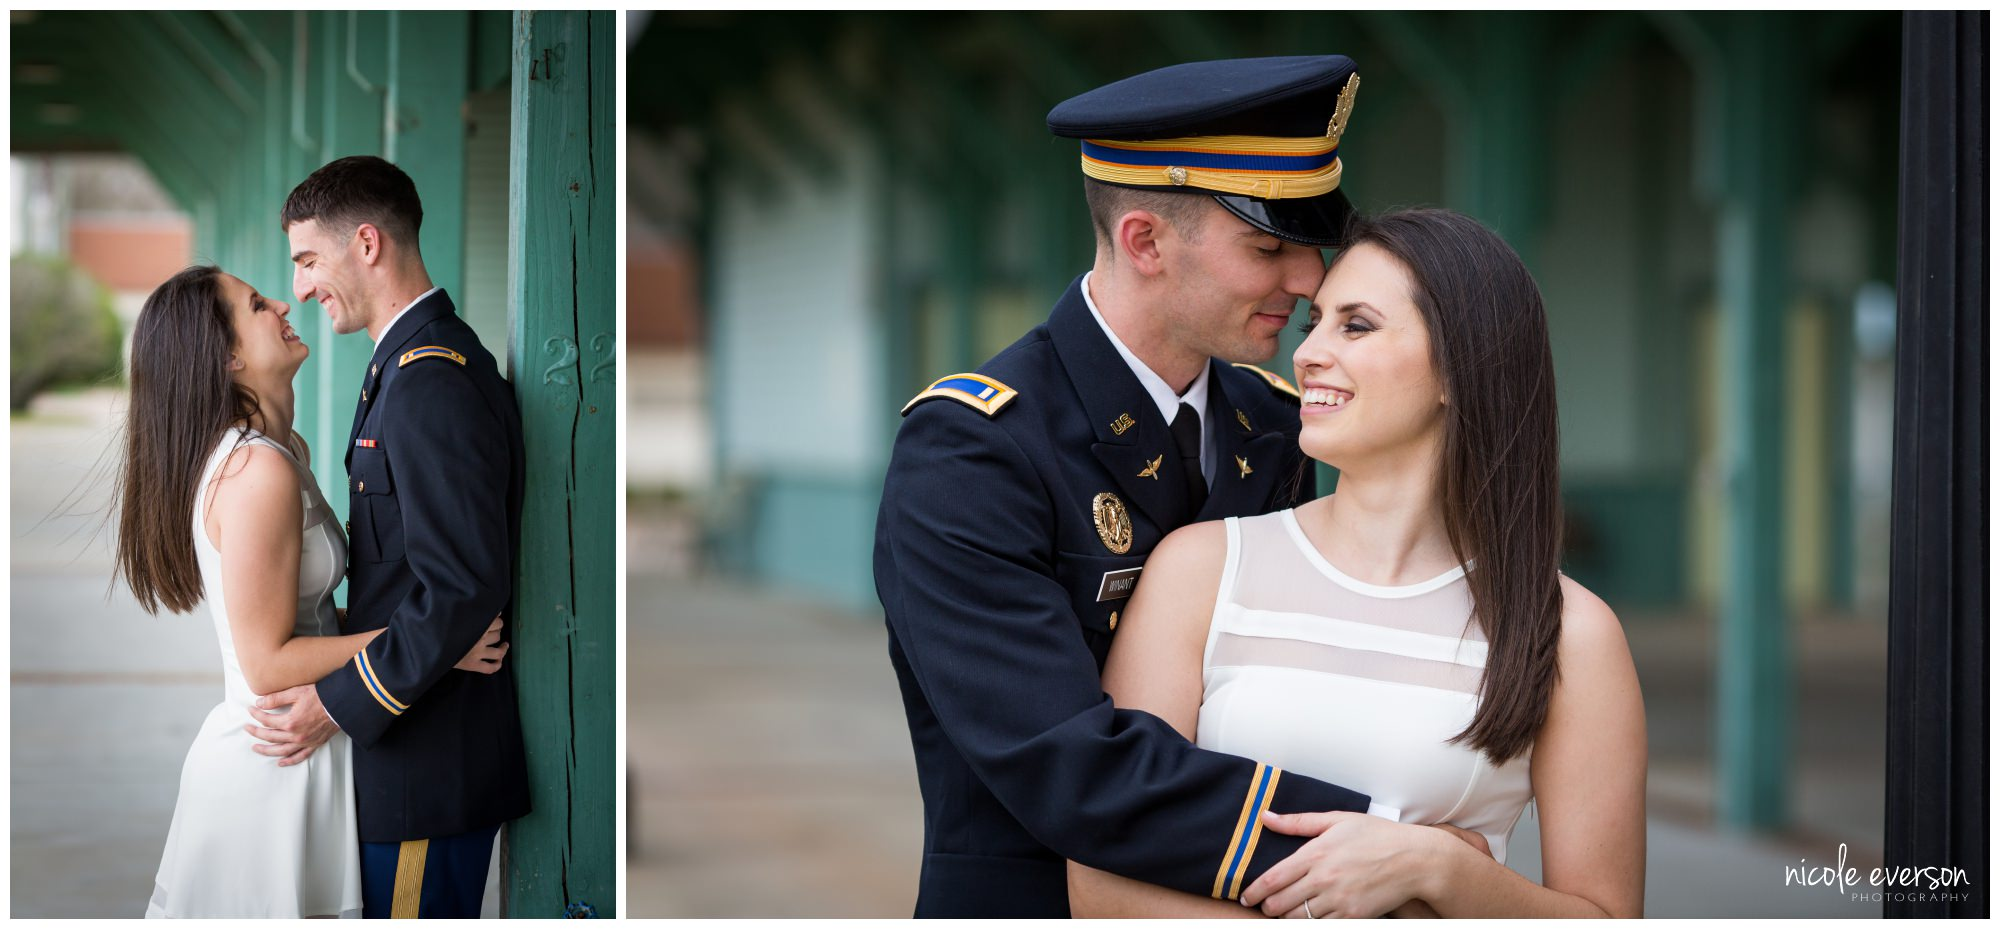 Nicole Everson Photography | Engagement